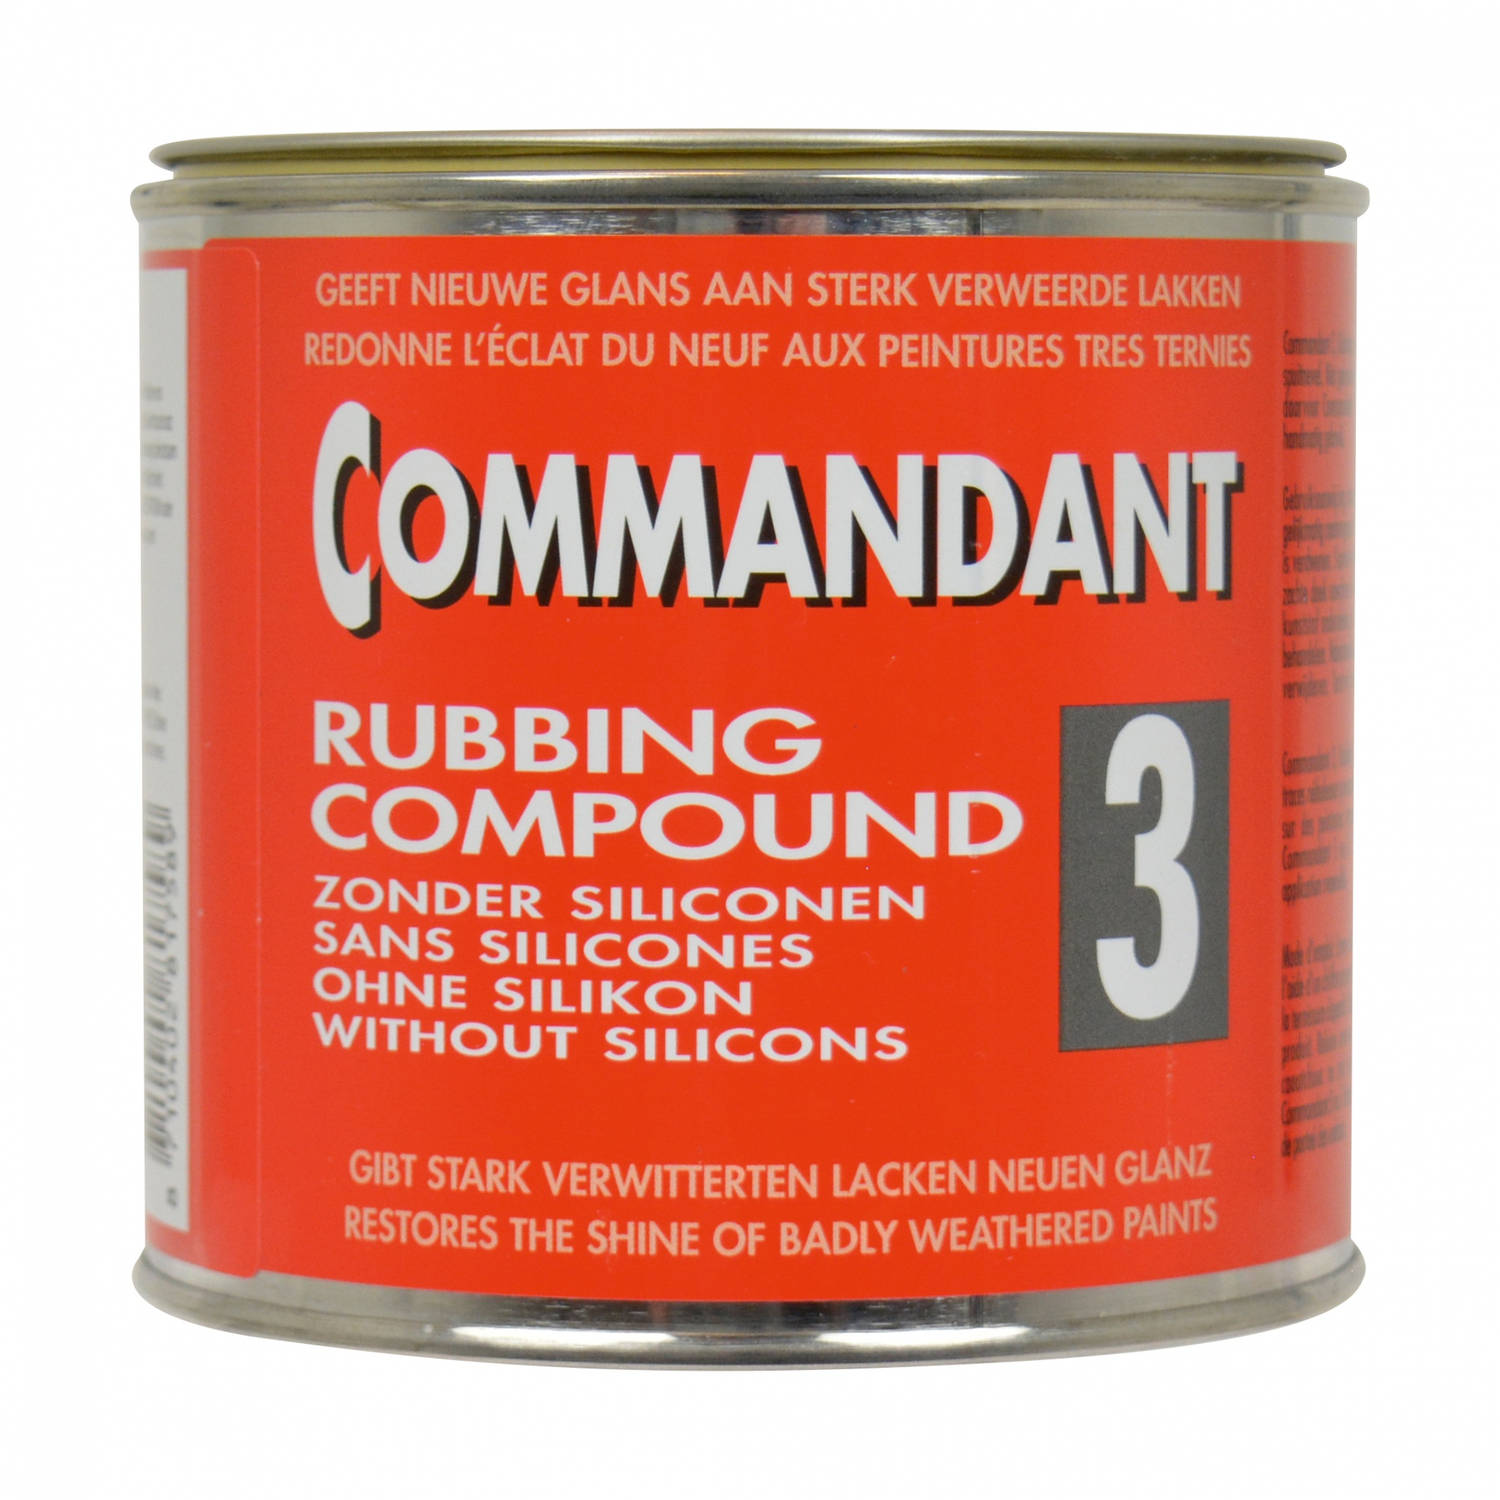 Commandant C35 Rubbing Compound nr3 500 gr